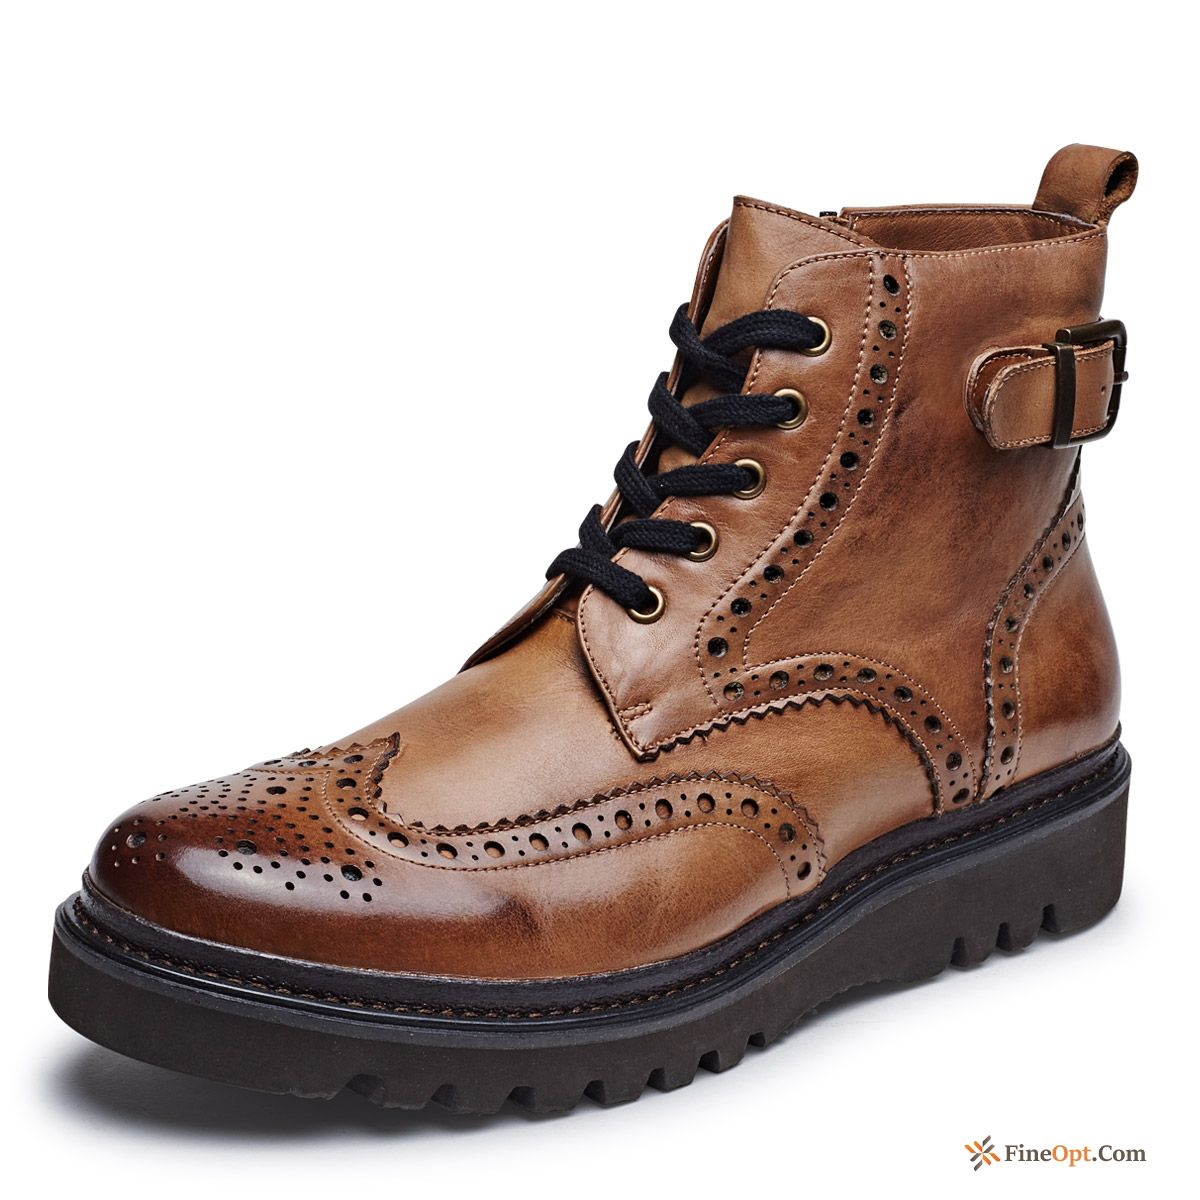 Retro Short Boots High Top British Casual Trend Men's Boots For Sale